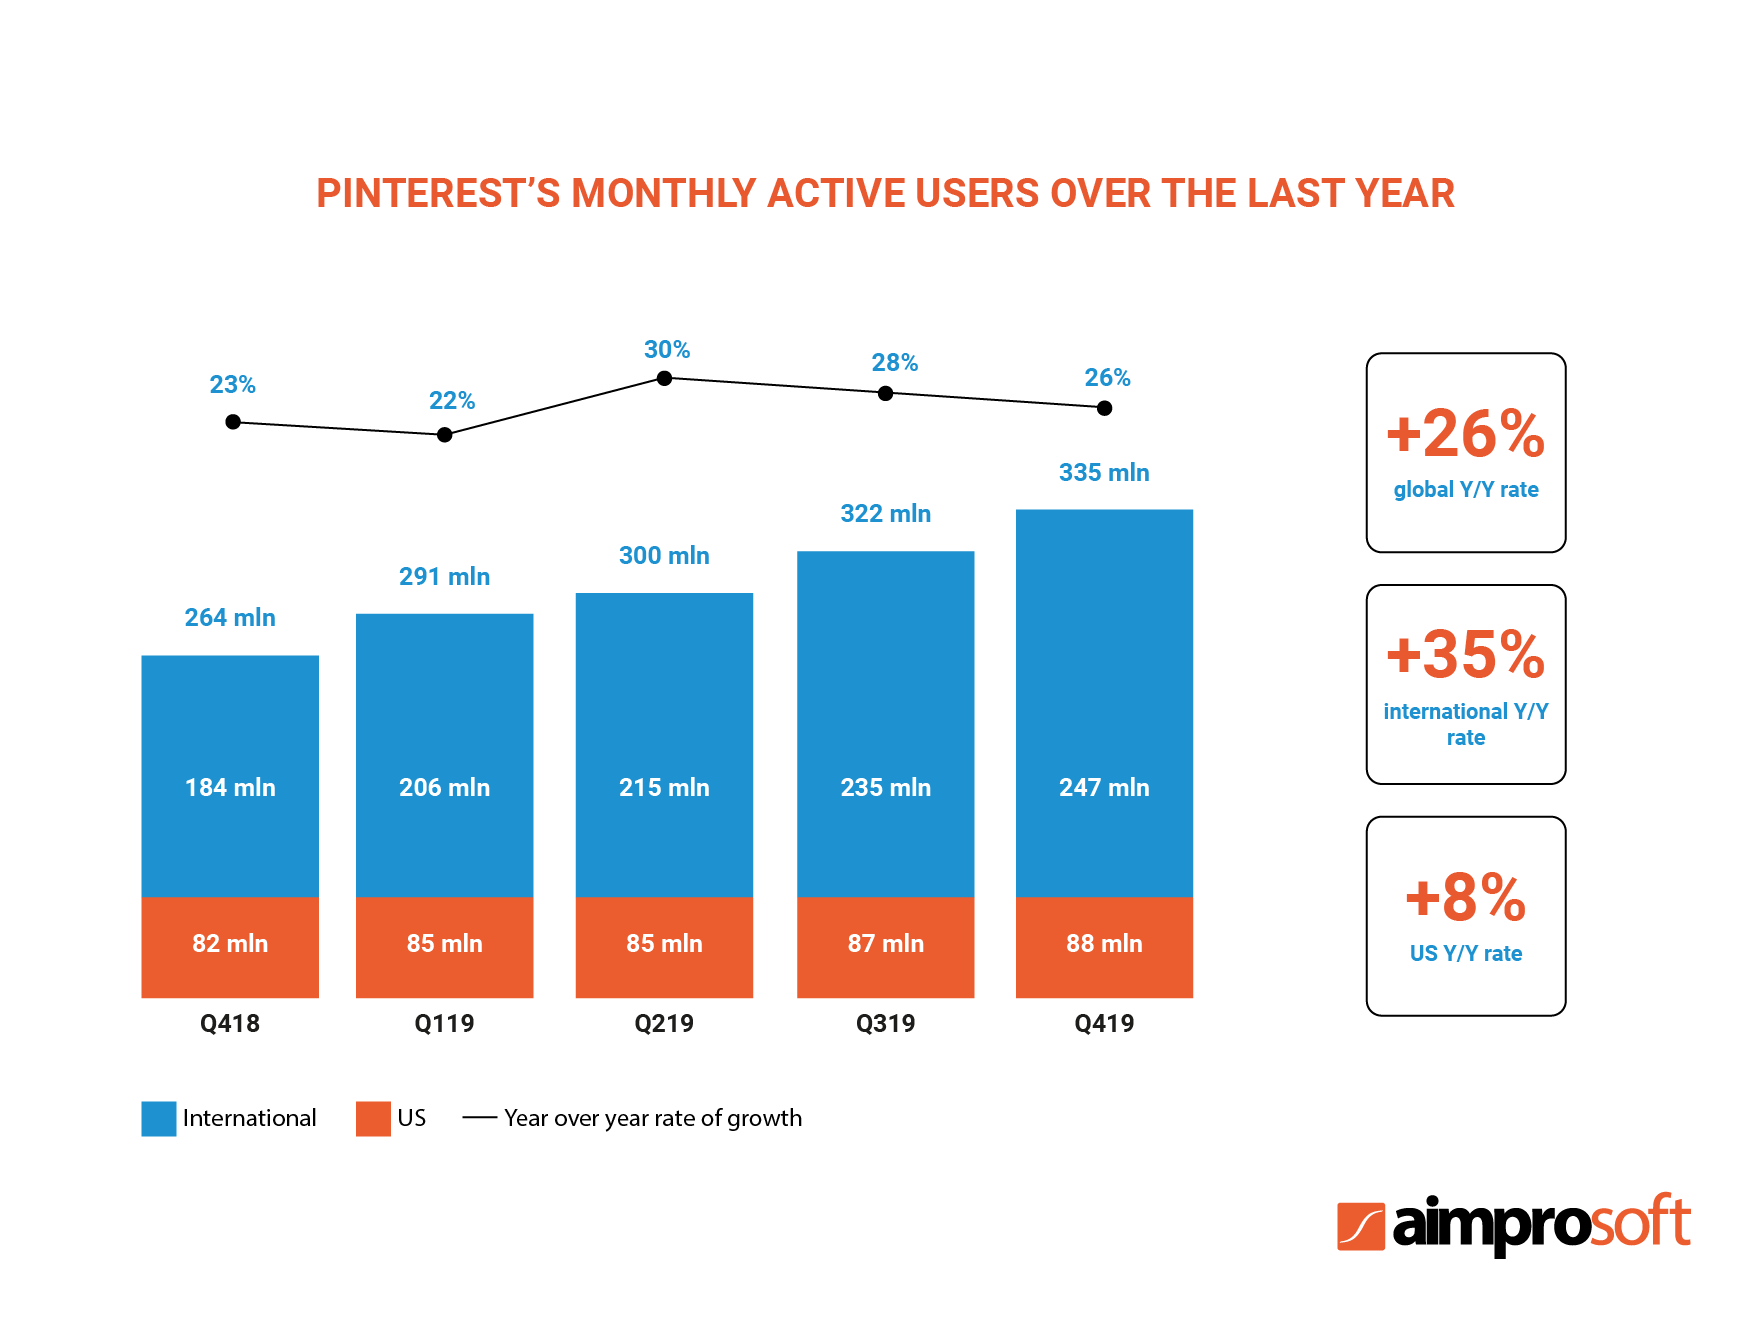 PInterest's monthly active users